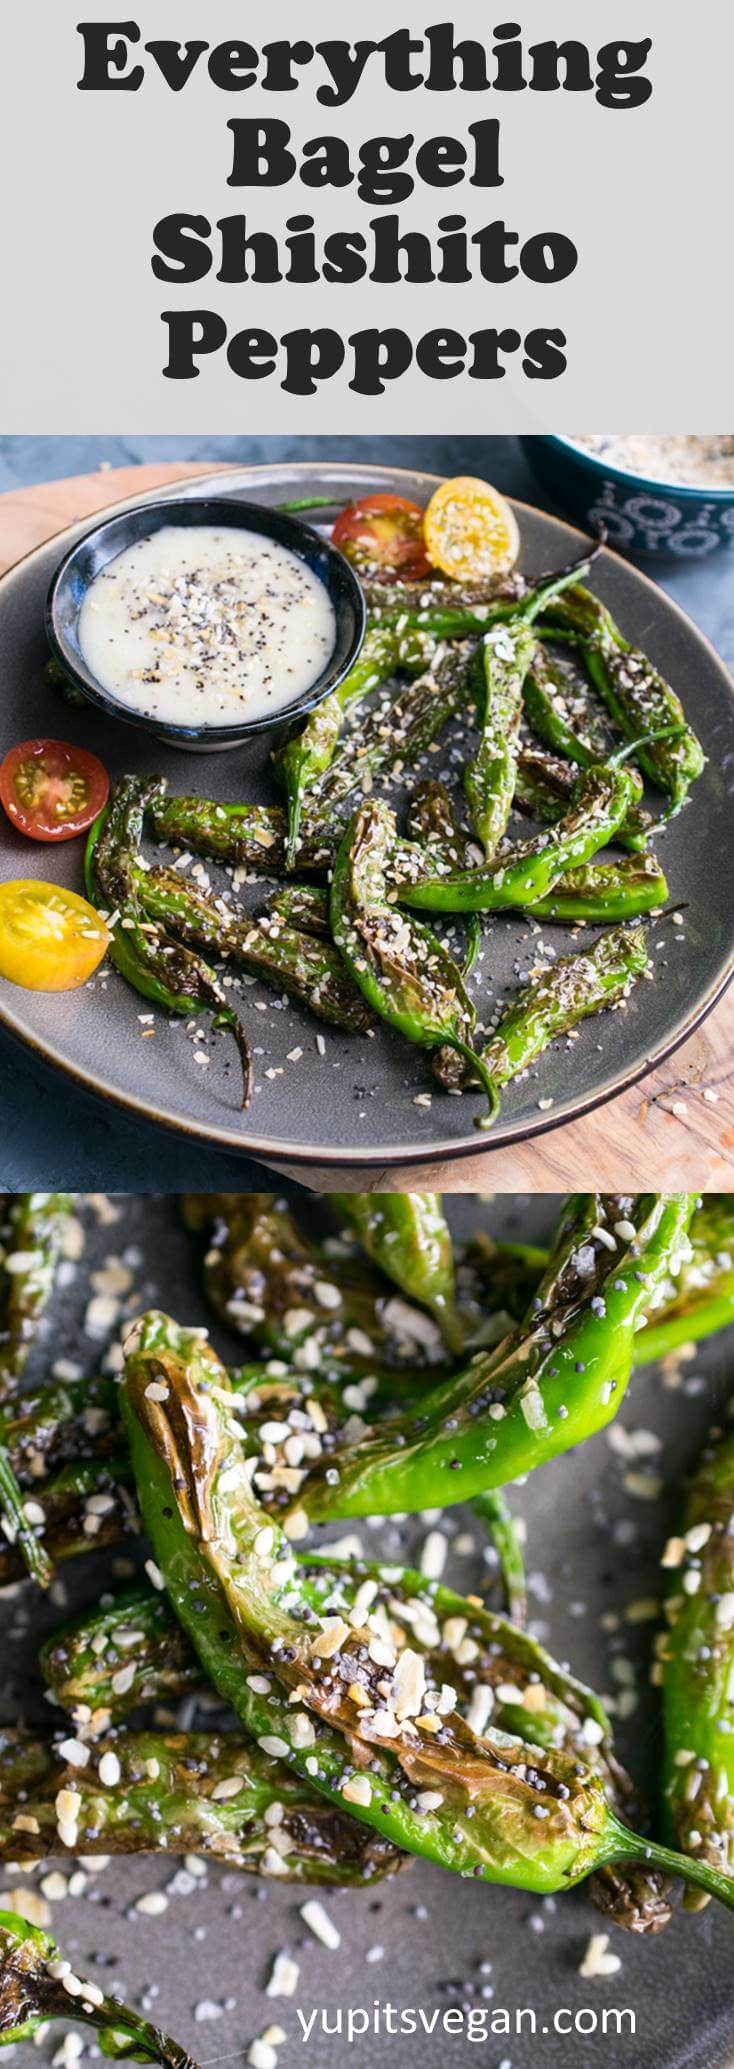 Everything Bagel Shishito Peppers: pan-char shishito peppers and then season them with everything bagel seasoning.